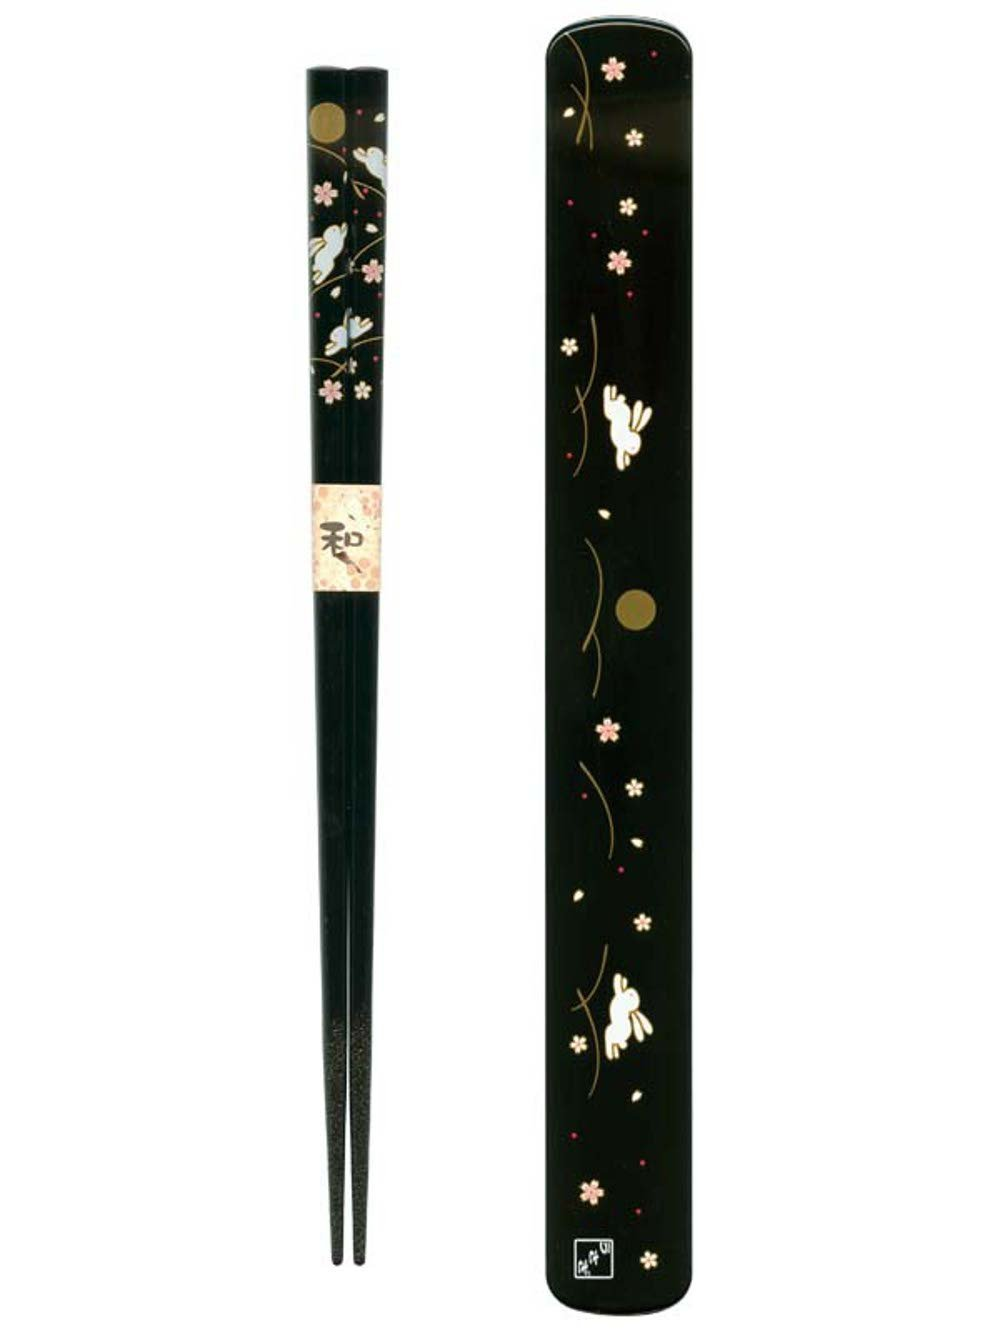 Ryu Mei 058016 Rabbit Japanese Black Chopstick Box and Chopstick Set, Black 3685